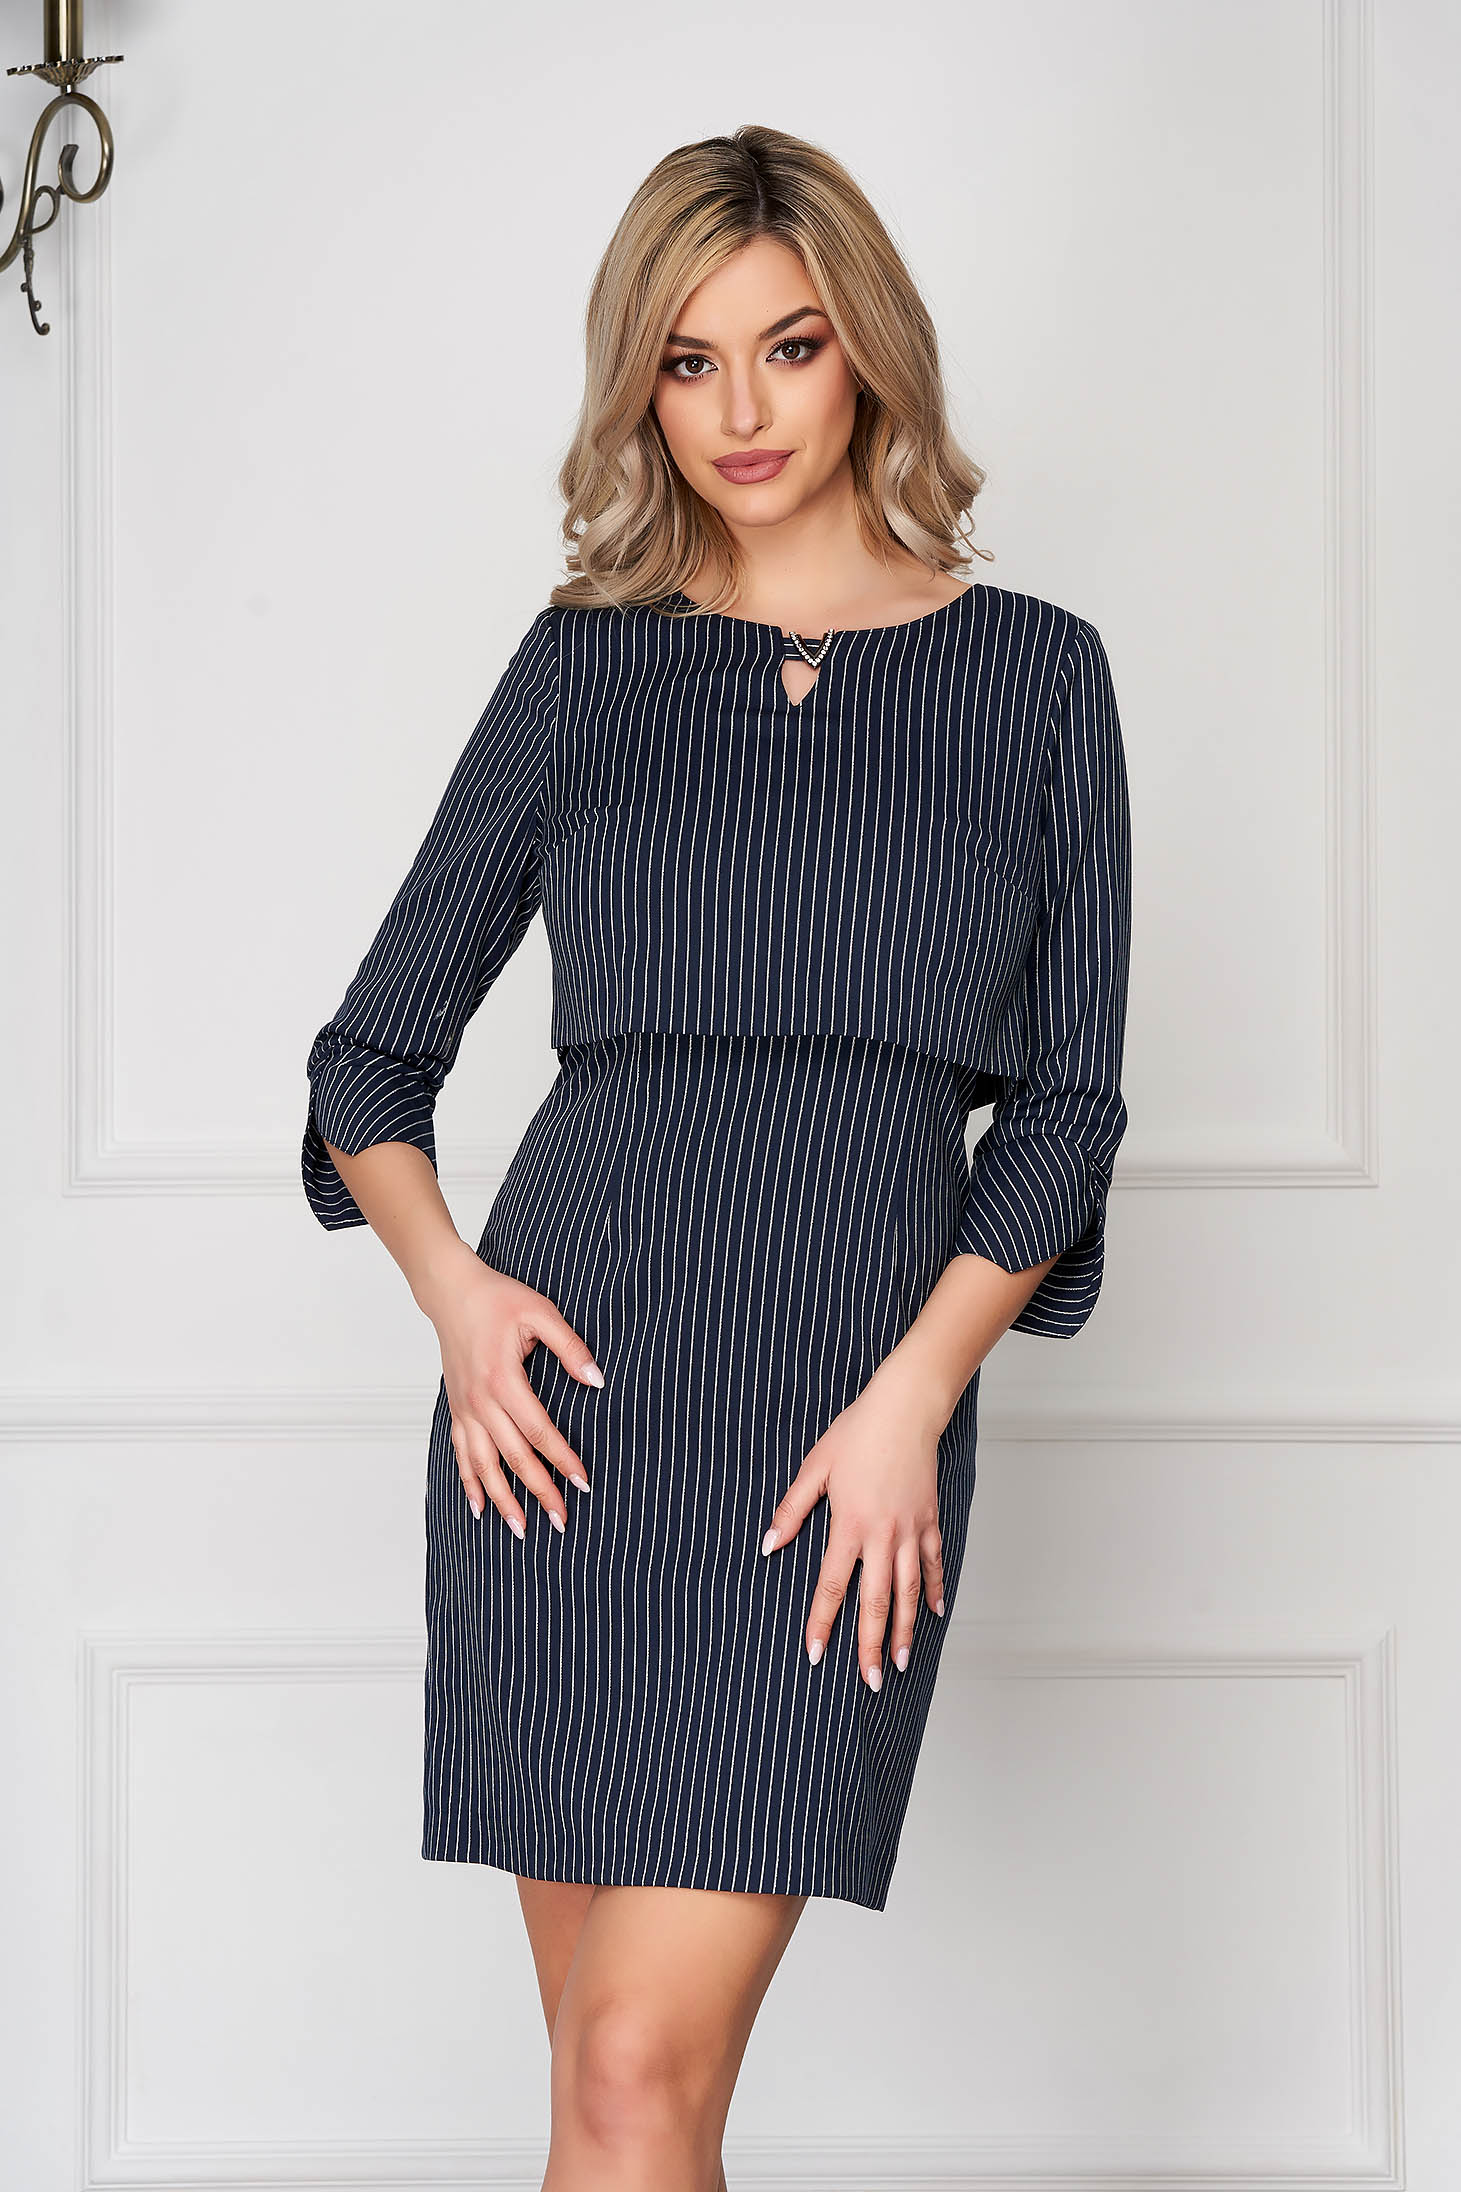 Darkblue dress short cut straight daily with stripes